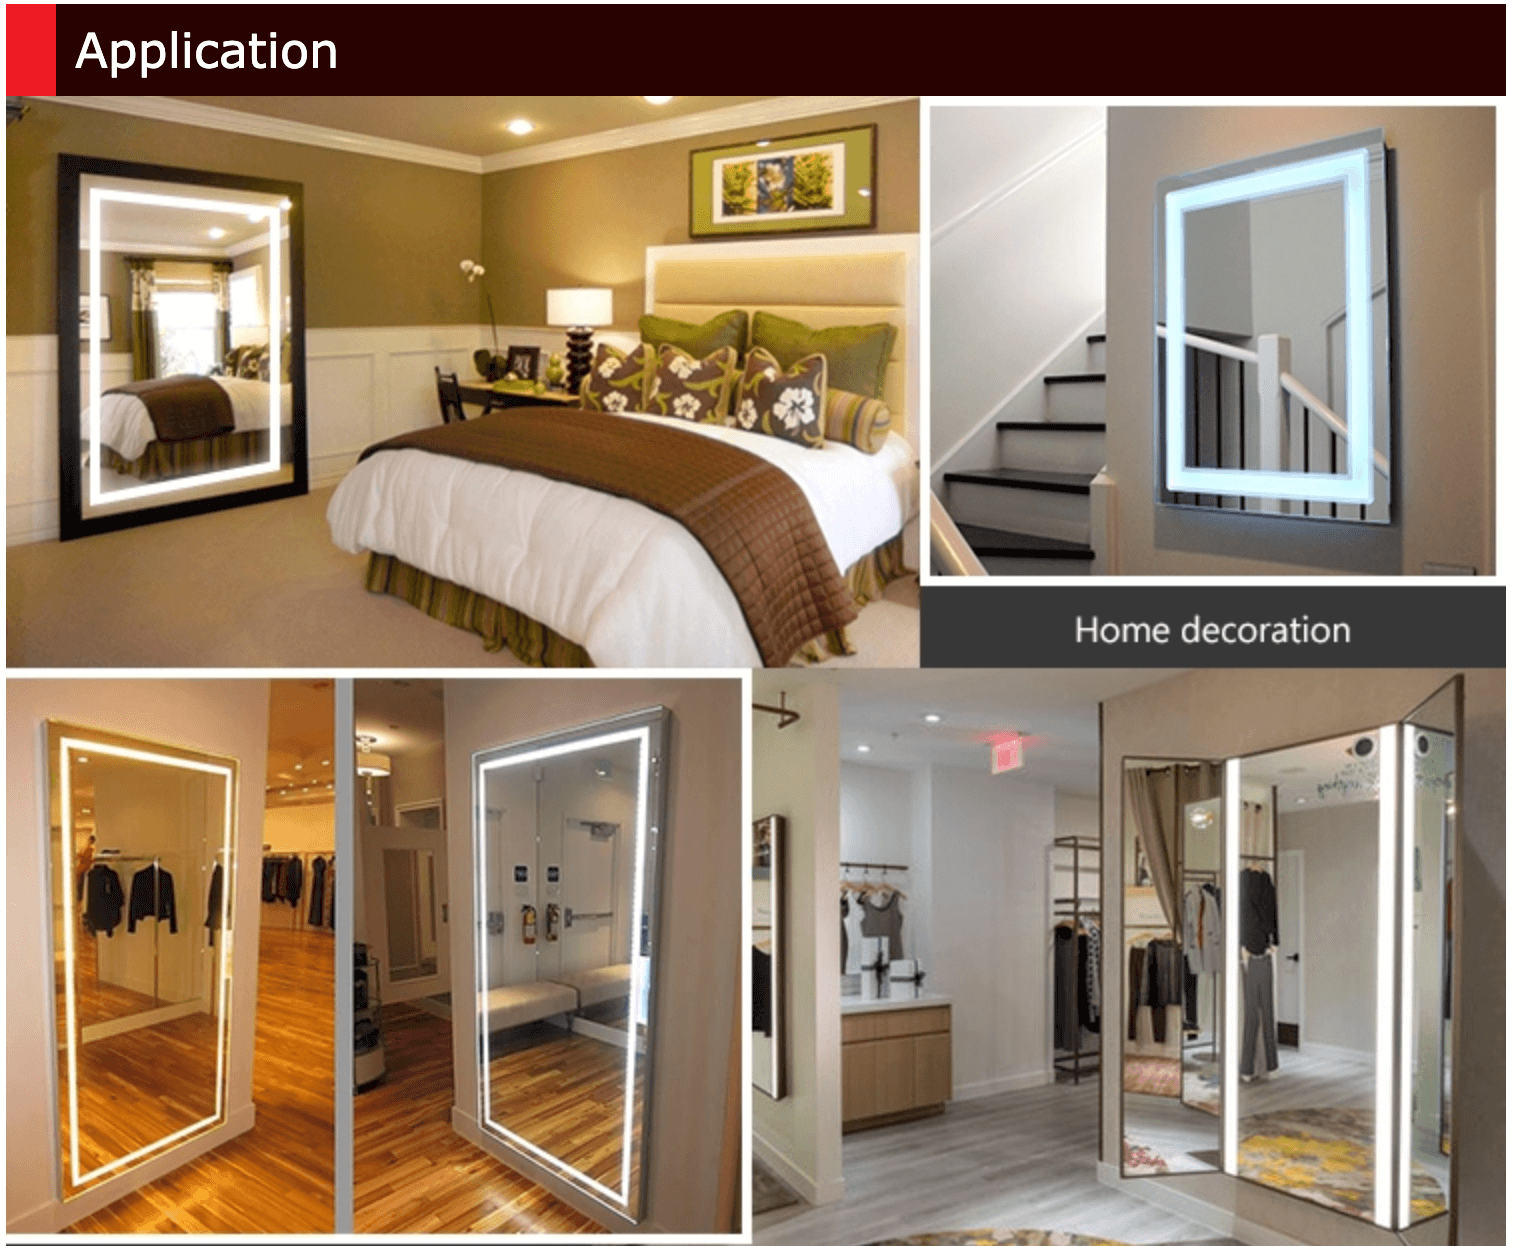 Wall Mirror Manufacturer applications